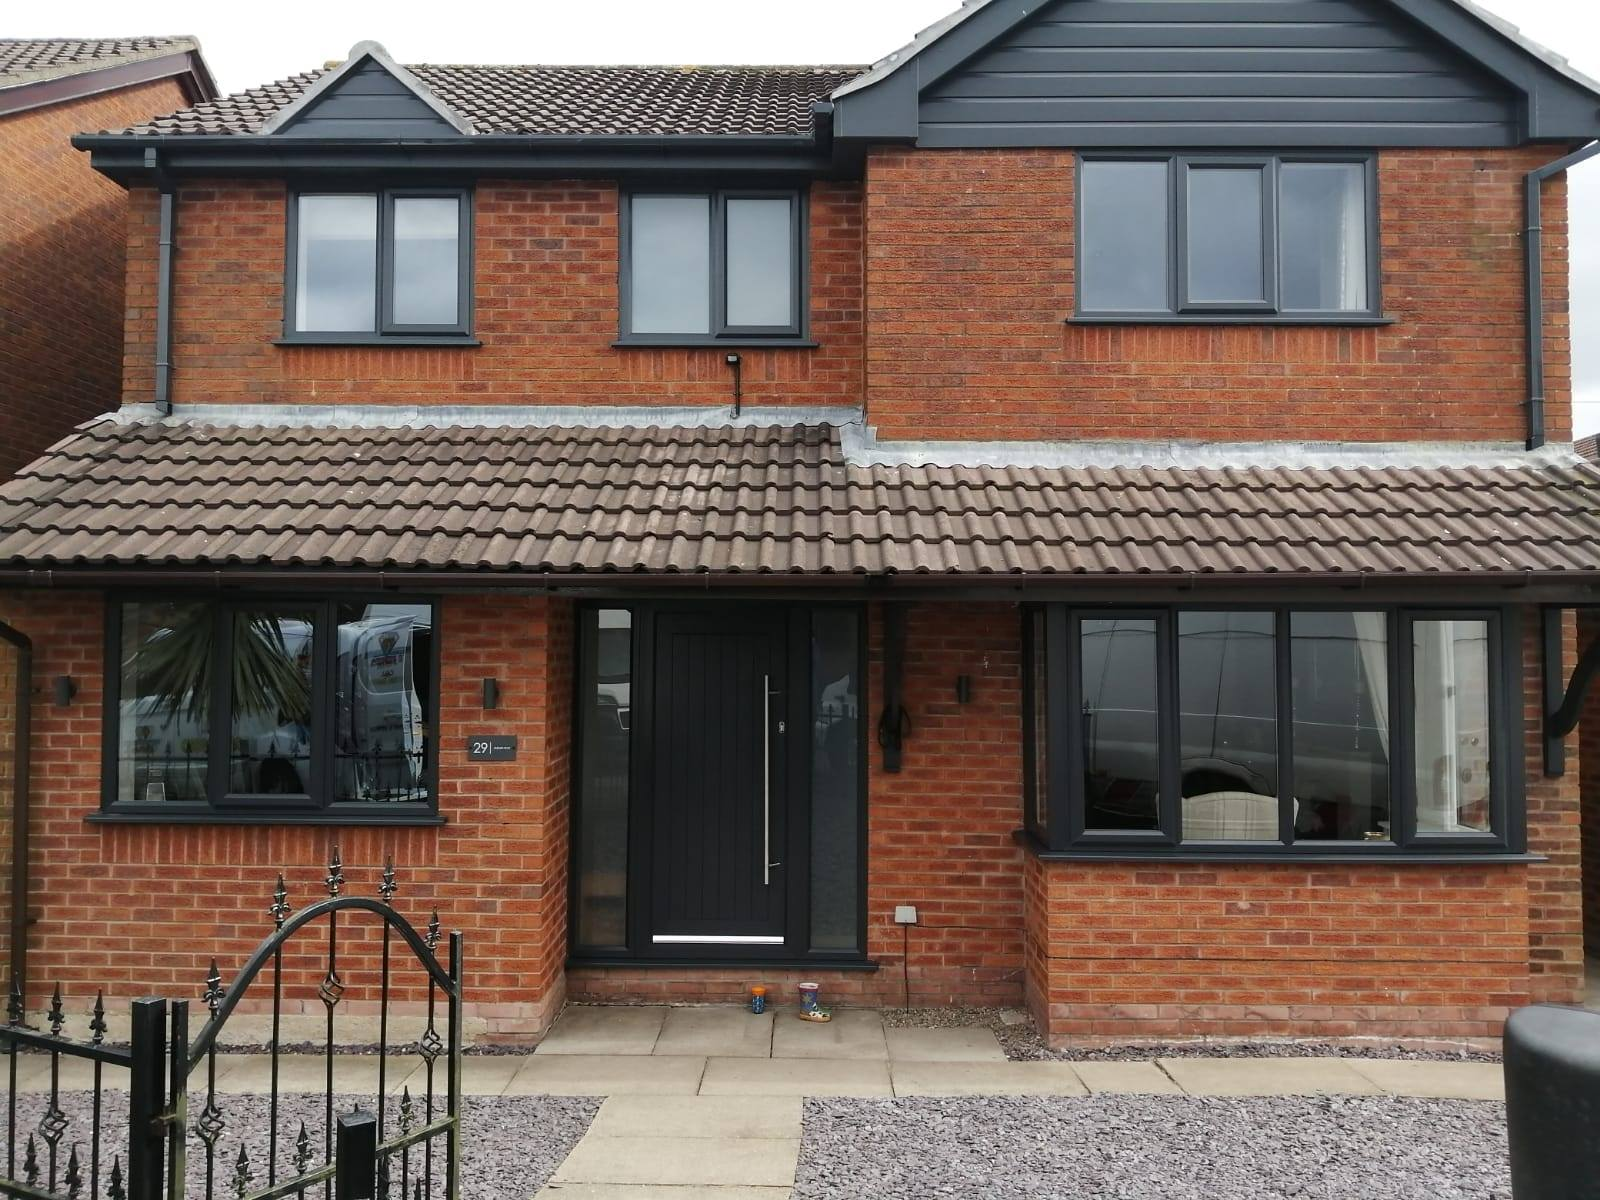 FULL HOUSE ANTHRACITE GREY WINDOWS AND COMPOSITE DOOR